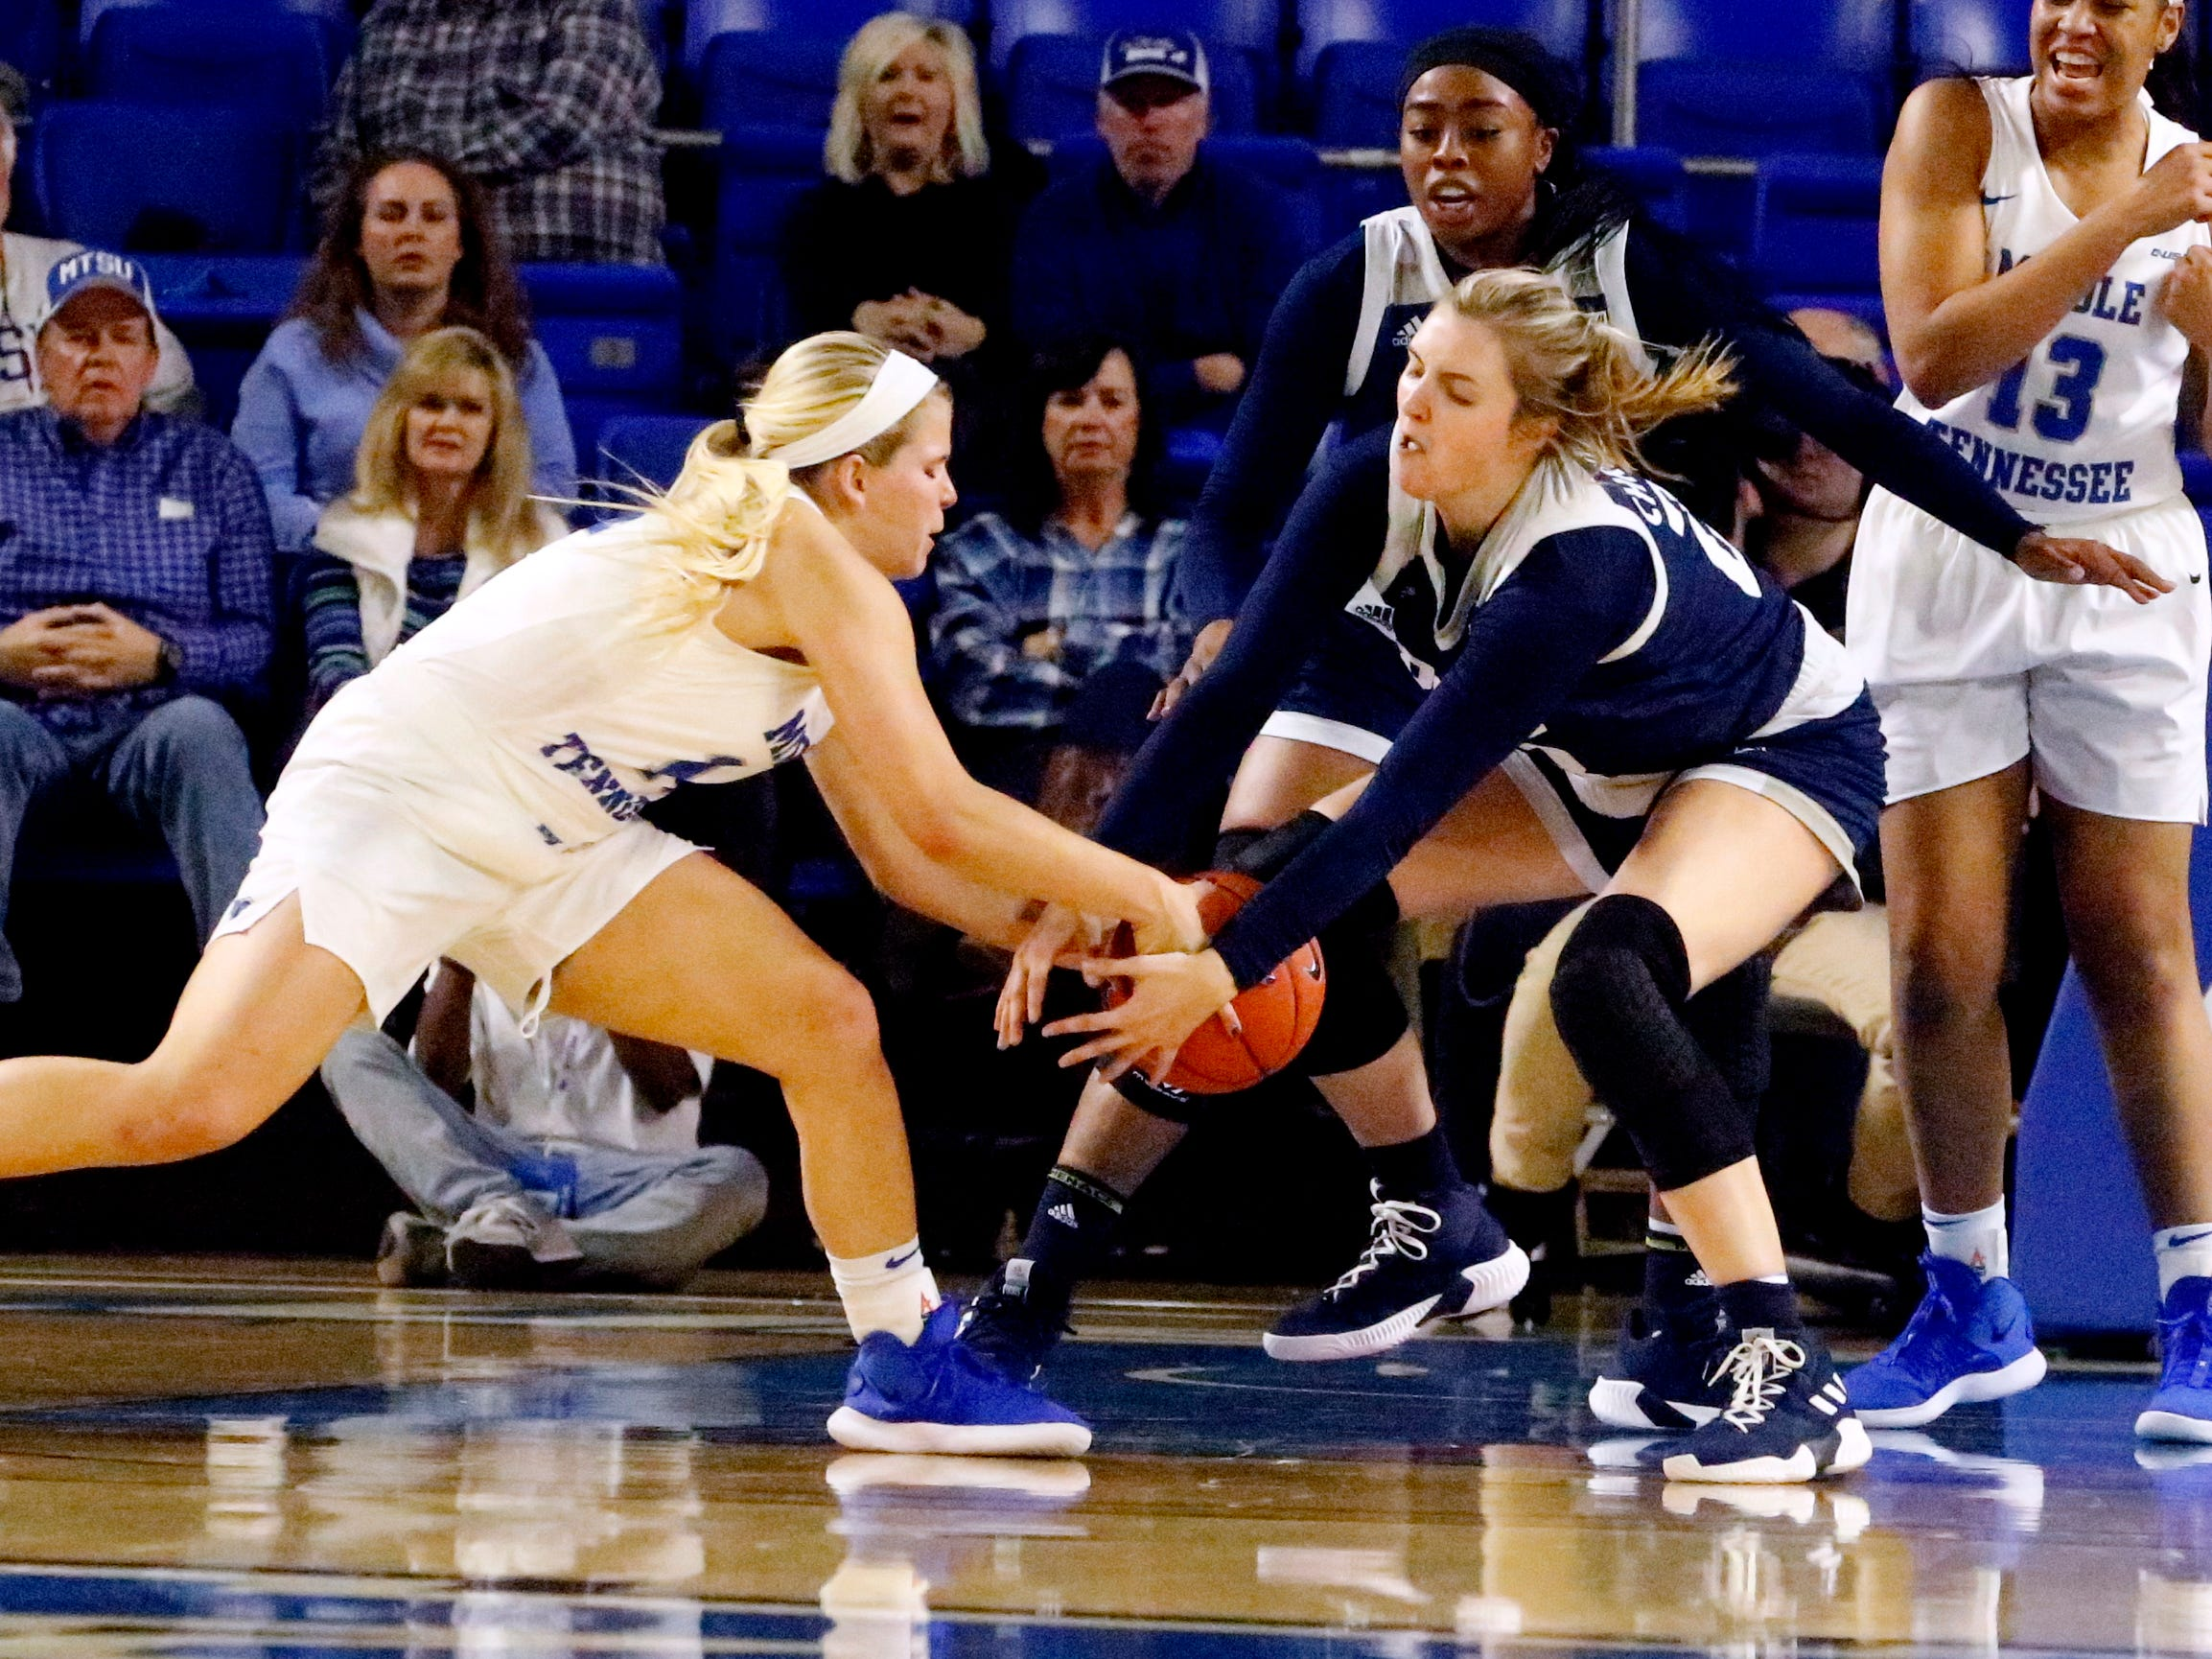 MTSU's guard Katie Collier (14) and Rice's center Nancy Mulkey (32) both go after the ball that Collier looses control of on Thursday Jan. 24, 2019.